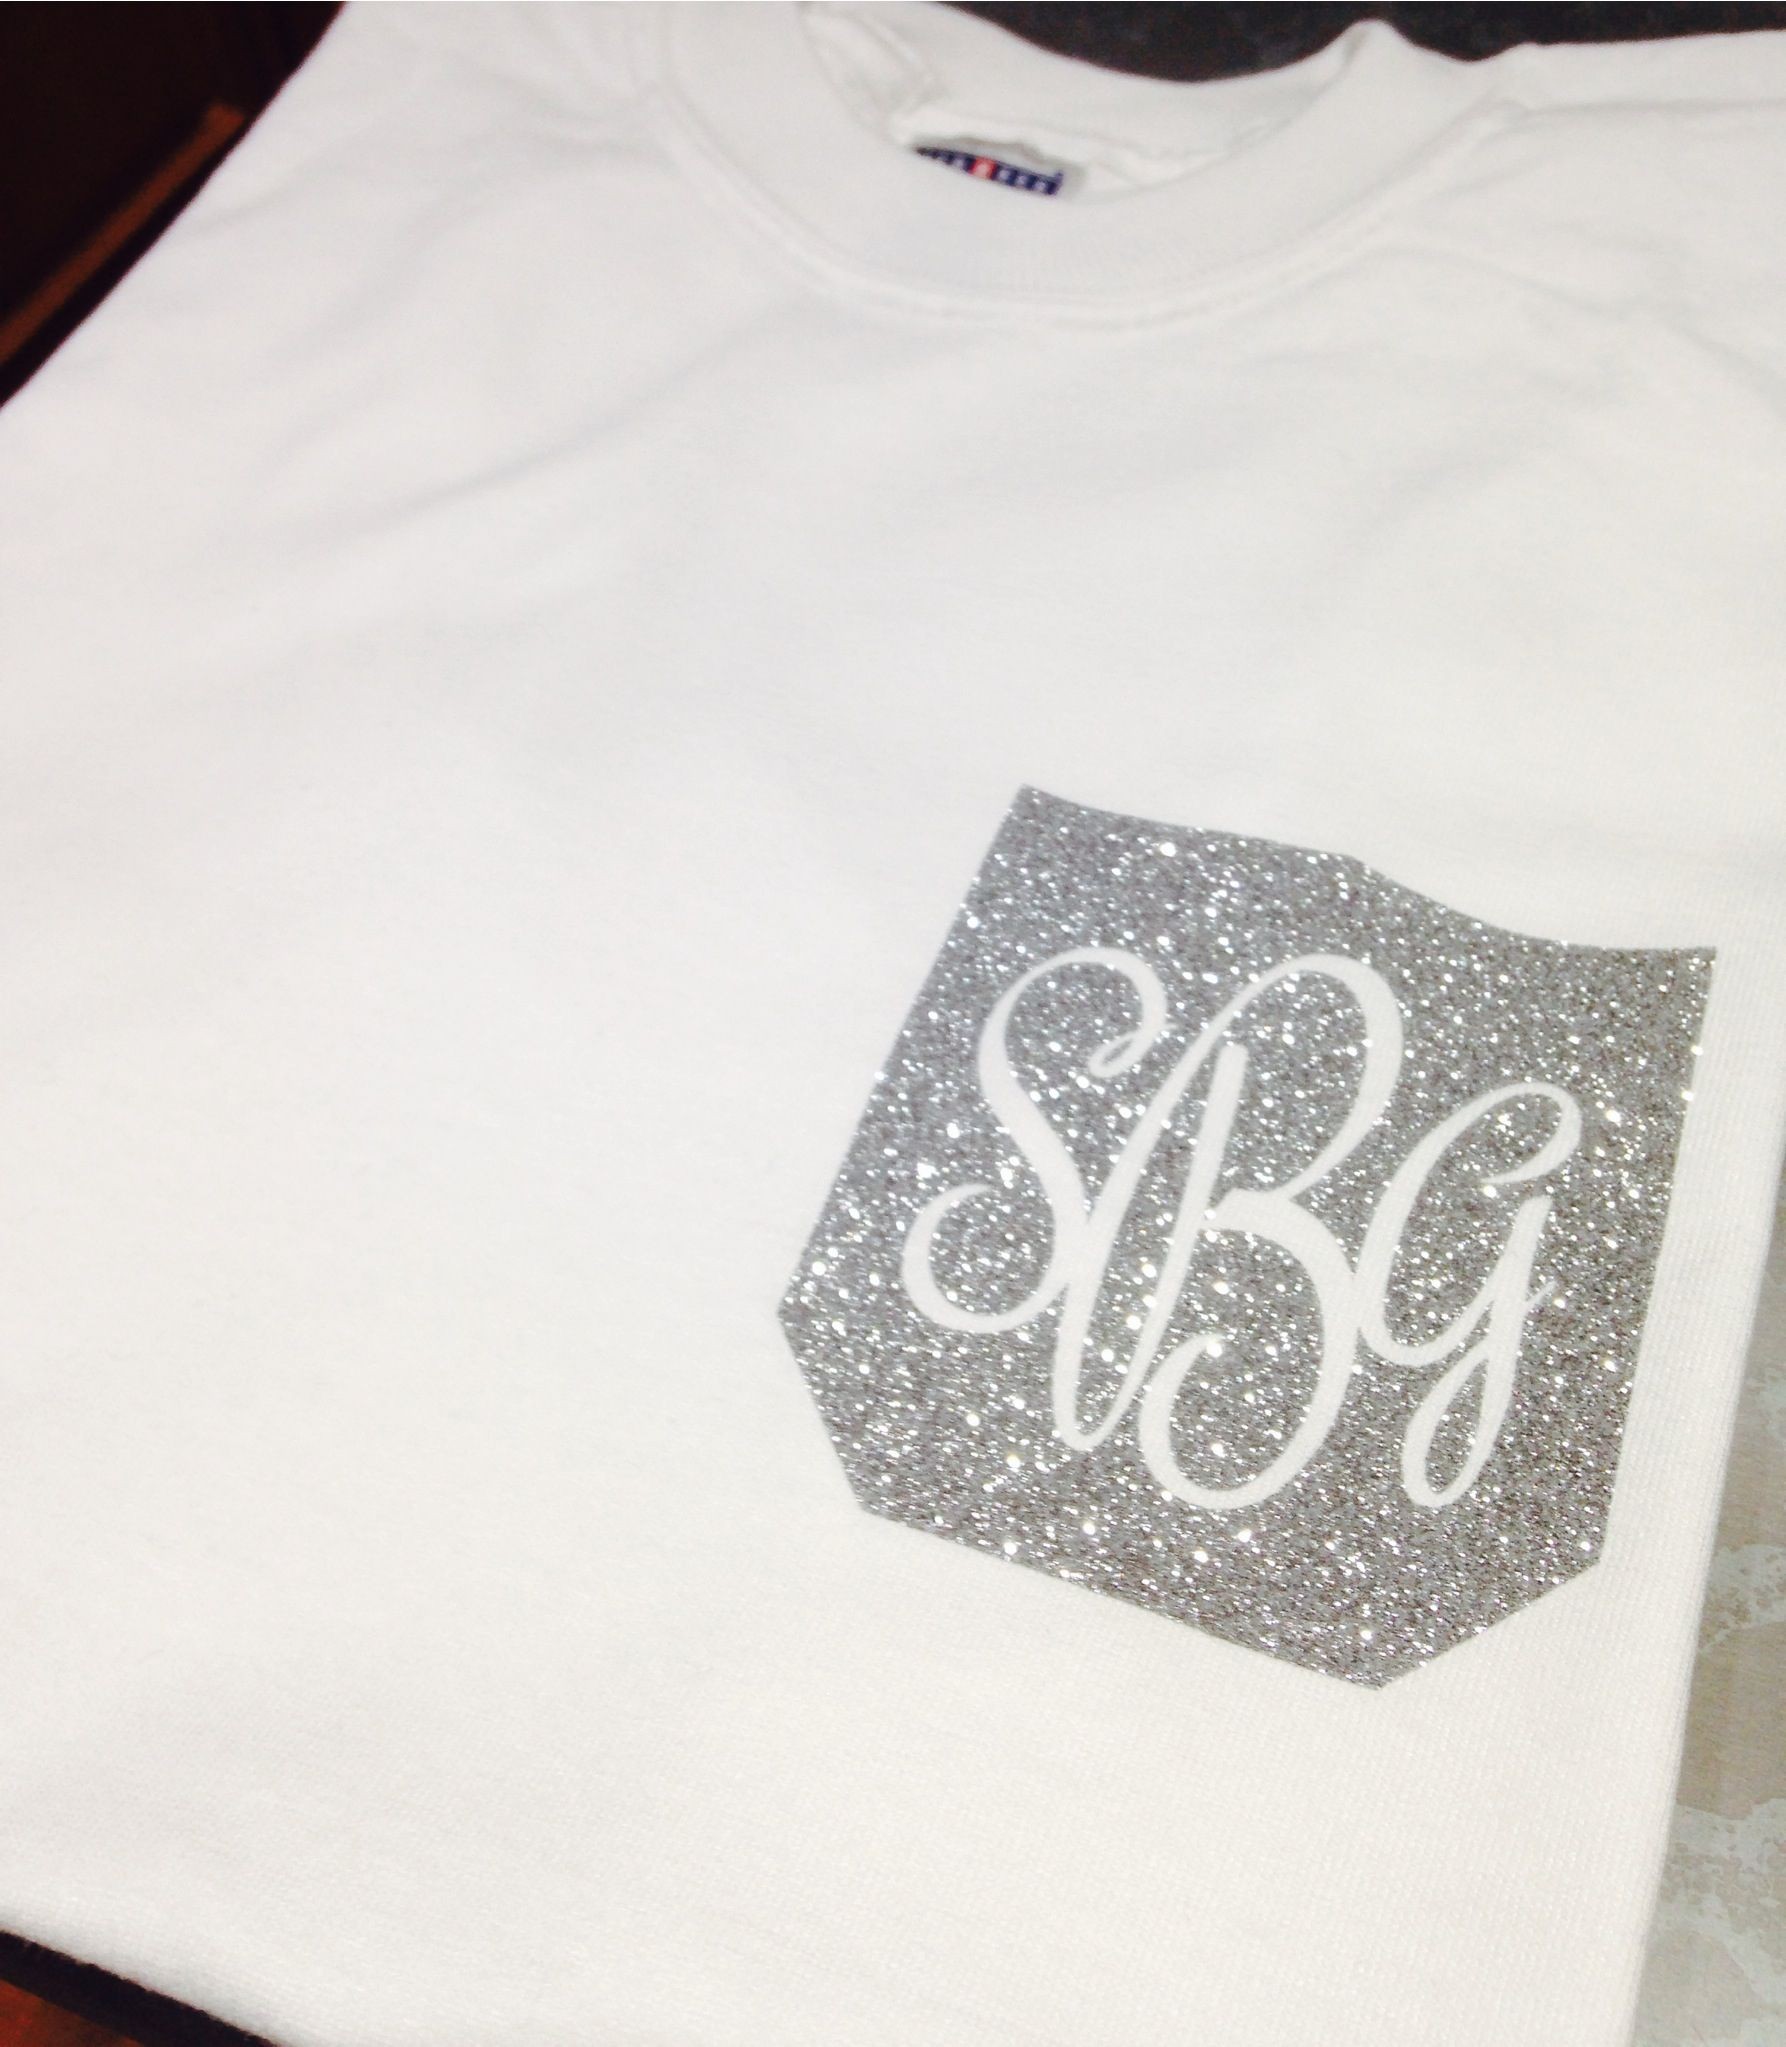 What A Great Birthday Gift Silver Glitter Vinyl On White Tee Silhouette Cameo Crafts Tee Shirt Crafts Vinyl Tshirts